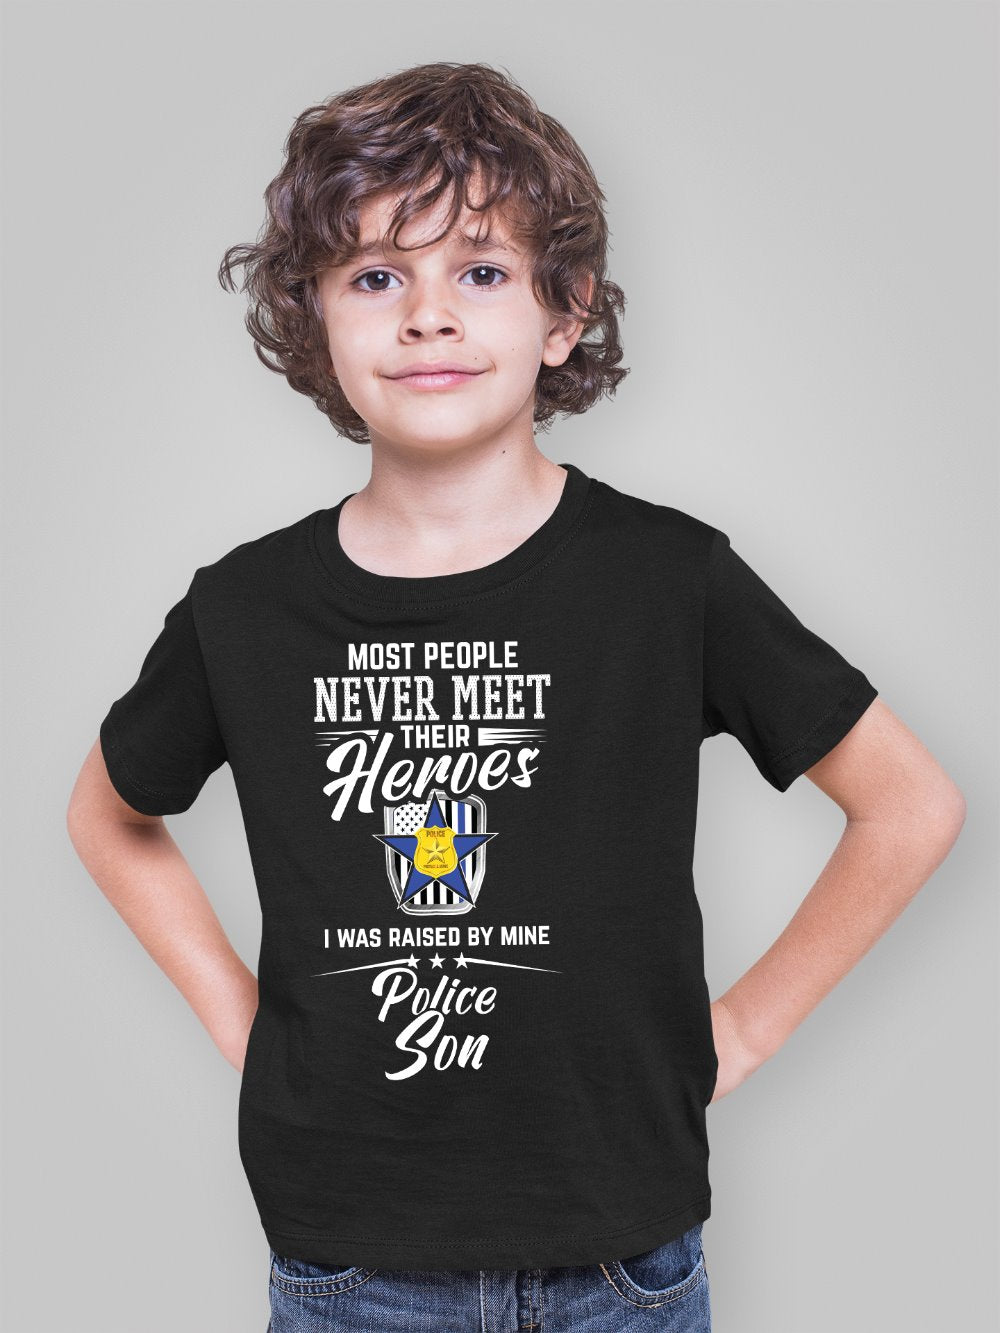 Most People Never Meet Their Heroes I Was Raised By Mine Police Son T-Shirt